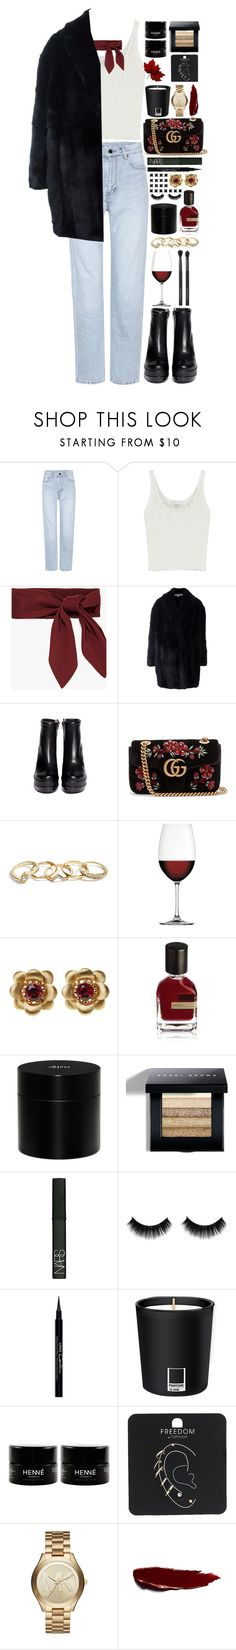 """""""My constellation in space"""" by bluemagicocean on Polyvore featuring Yves Saint Laurent, 3.1 Phillip Lim, Alexander McQueen, Robert Clergerie, Gucci, GUESS, Nachtmann, La Perla, Orto Parisi and Frédéric Malle"""